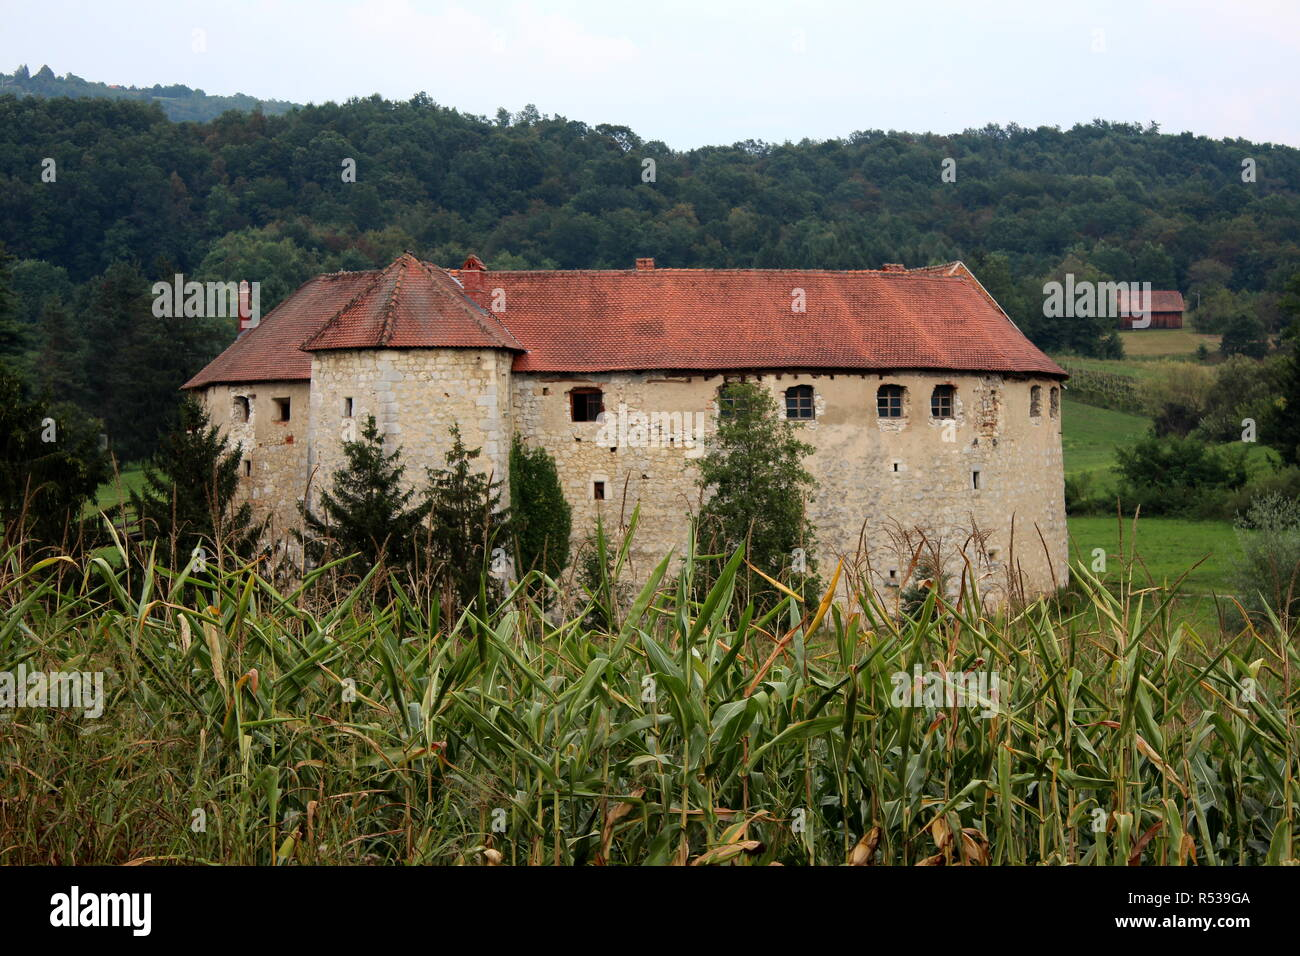 Old town castle Ribnik used as defense against enemies from thirteenth century surrounded with dense forest in background and cornfield in front - Stock Image